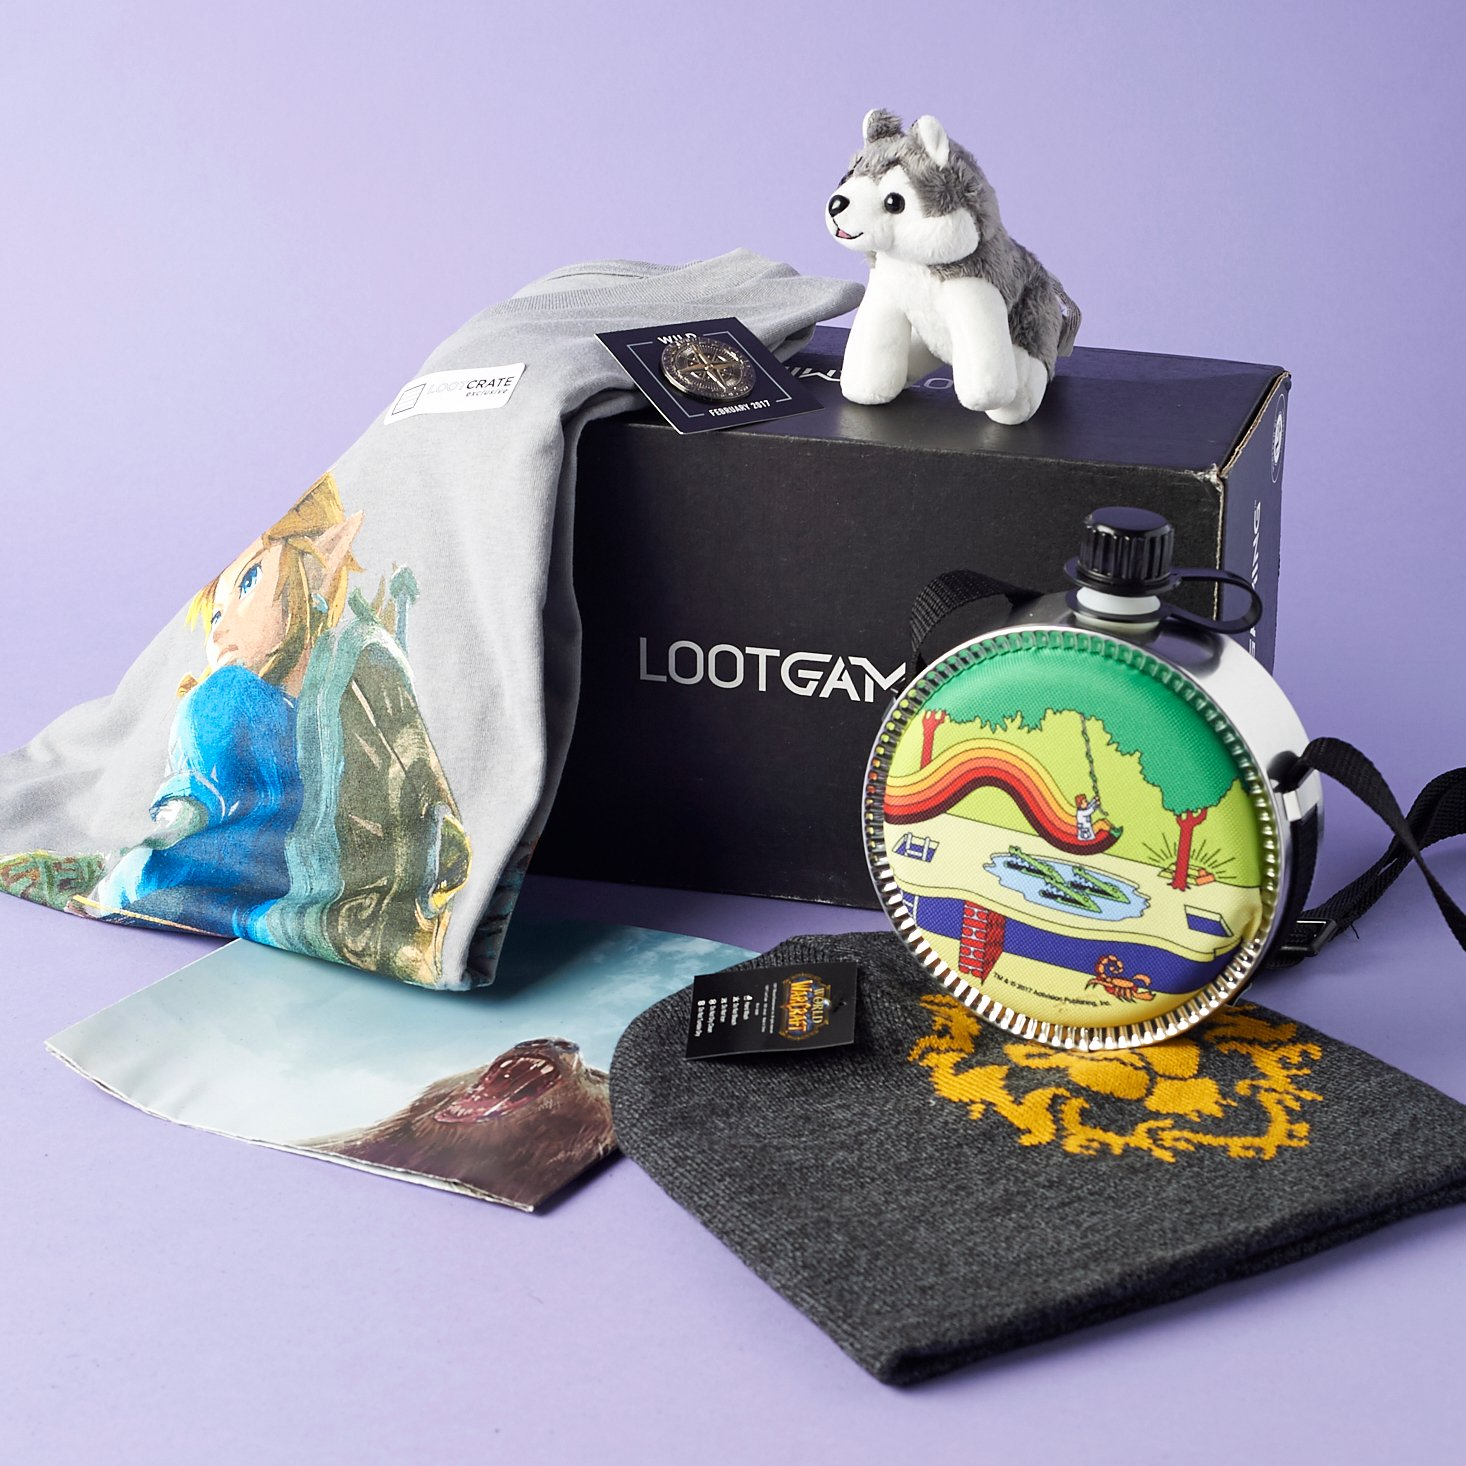 Loot-gaming-march-2017-0004